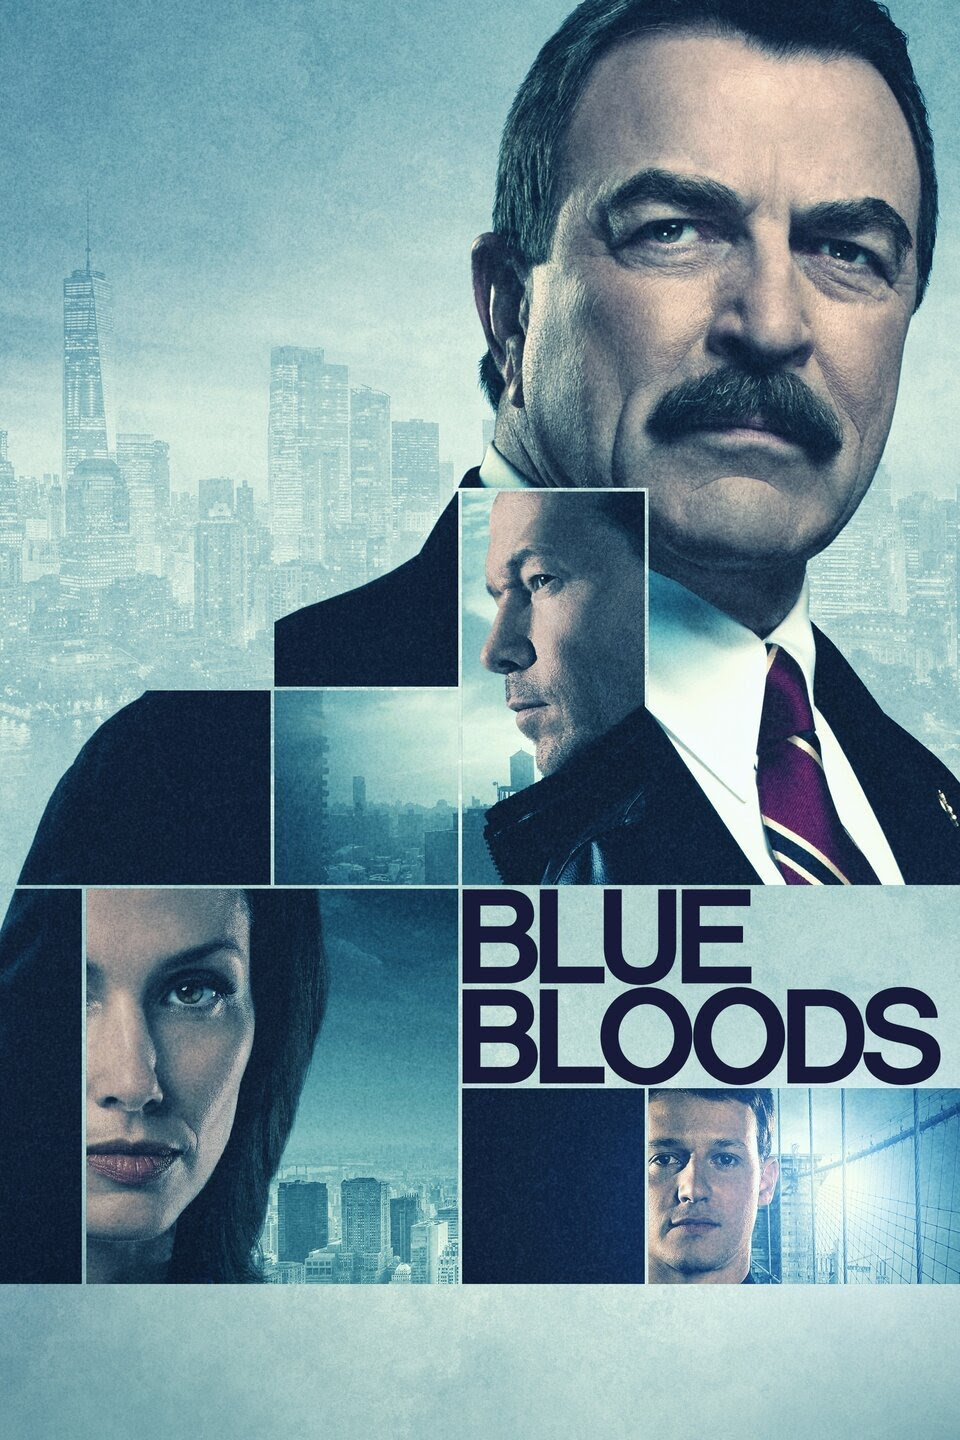 Blue Bloods - Season 11 Episode 5 - Spilling Secrets